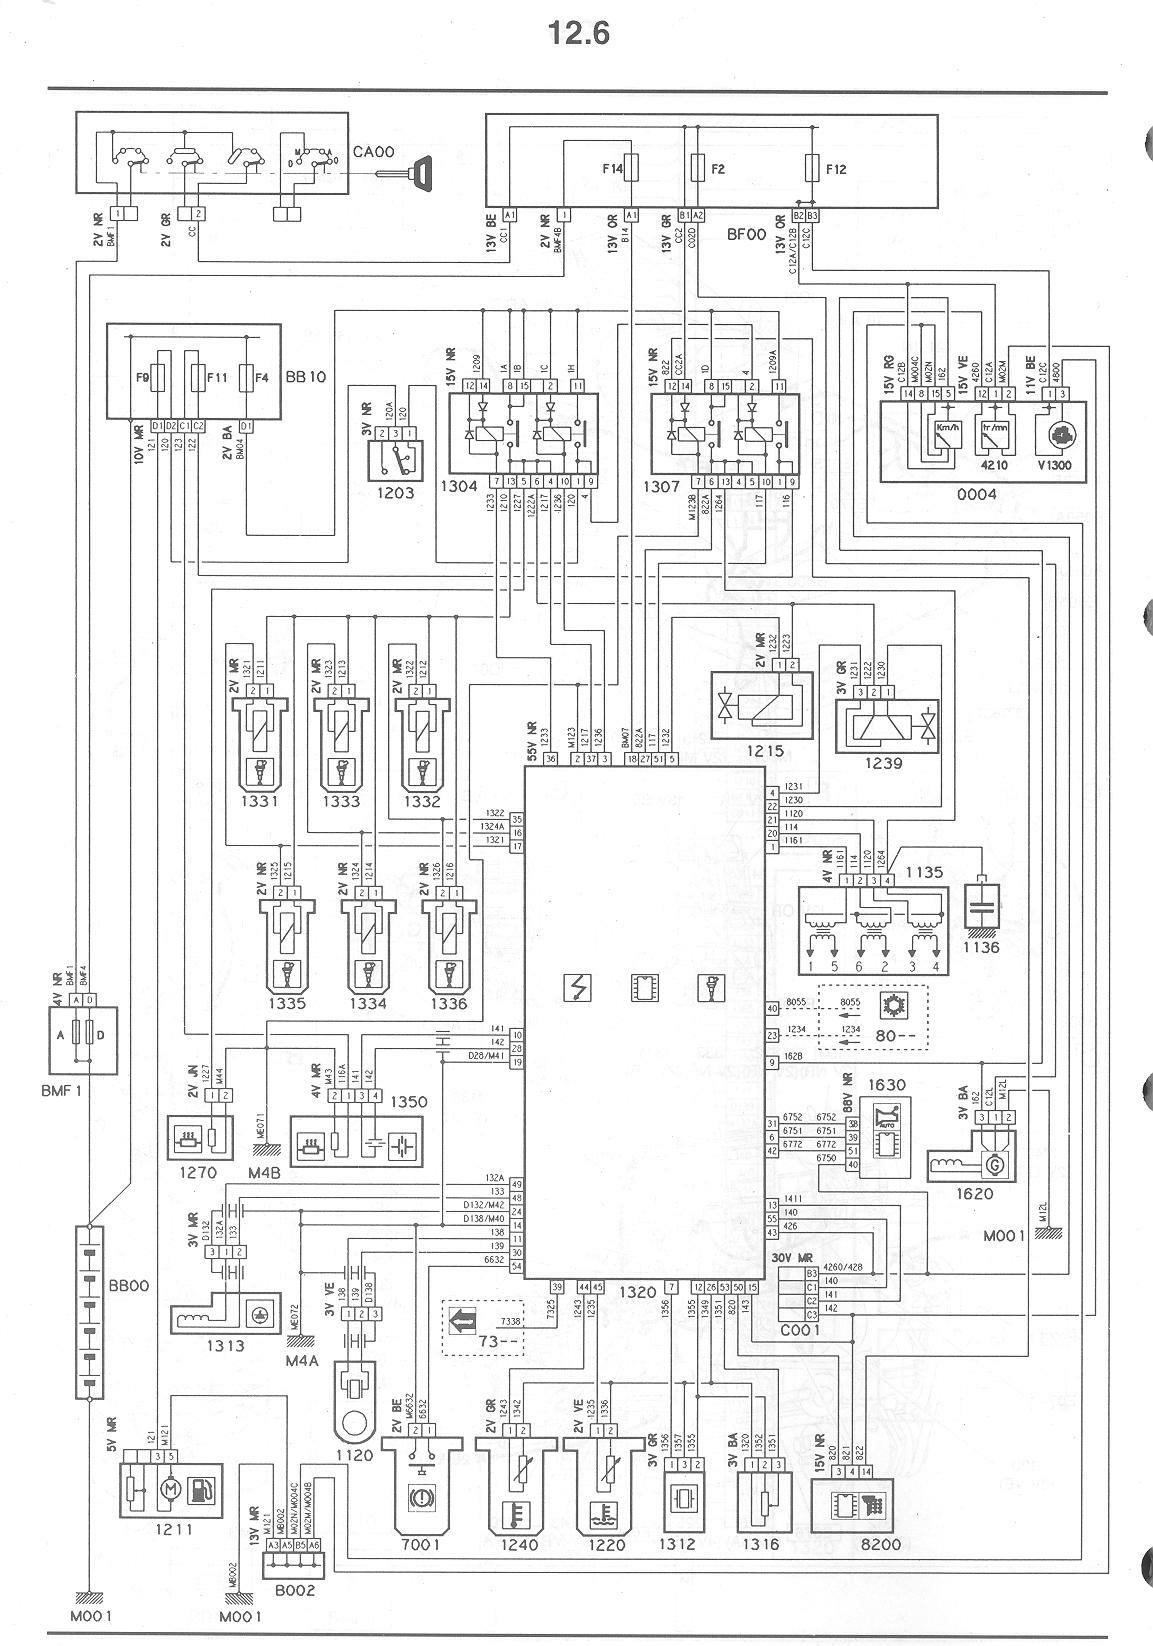 Elec moreover 1986 Chevy K10 Vacuum Diagram also Chevrolet Cobalt 2005 2010 Fuse Box Diagram likewise 1br28 2000 Chevy Blazer Lt Neither Power Seat furthermore EqTEtG. on corvette fuse box diagram